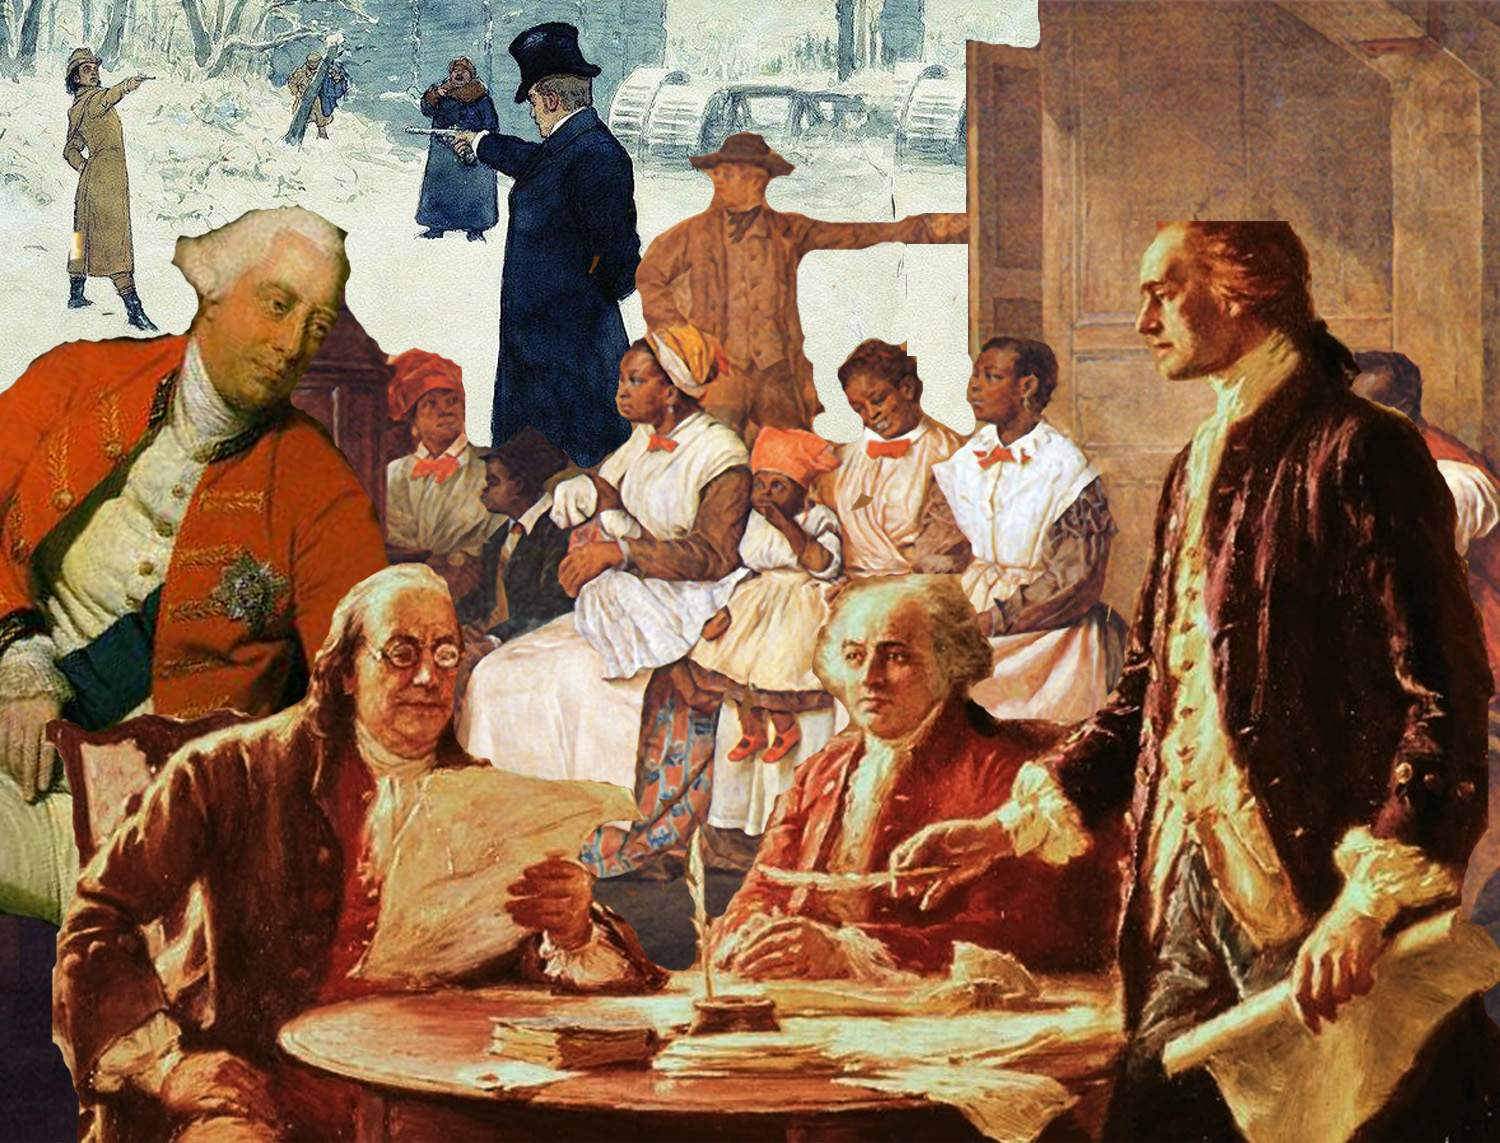 I DEMAND SATISFACTION - A TOAST TO THE SIGNING OF THE DECLARATION OF INDEPENDENCE